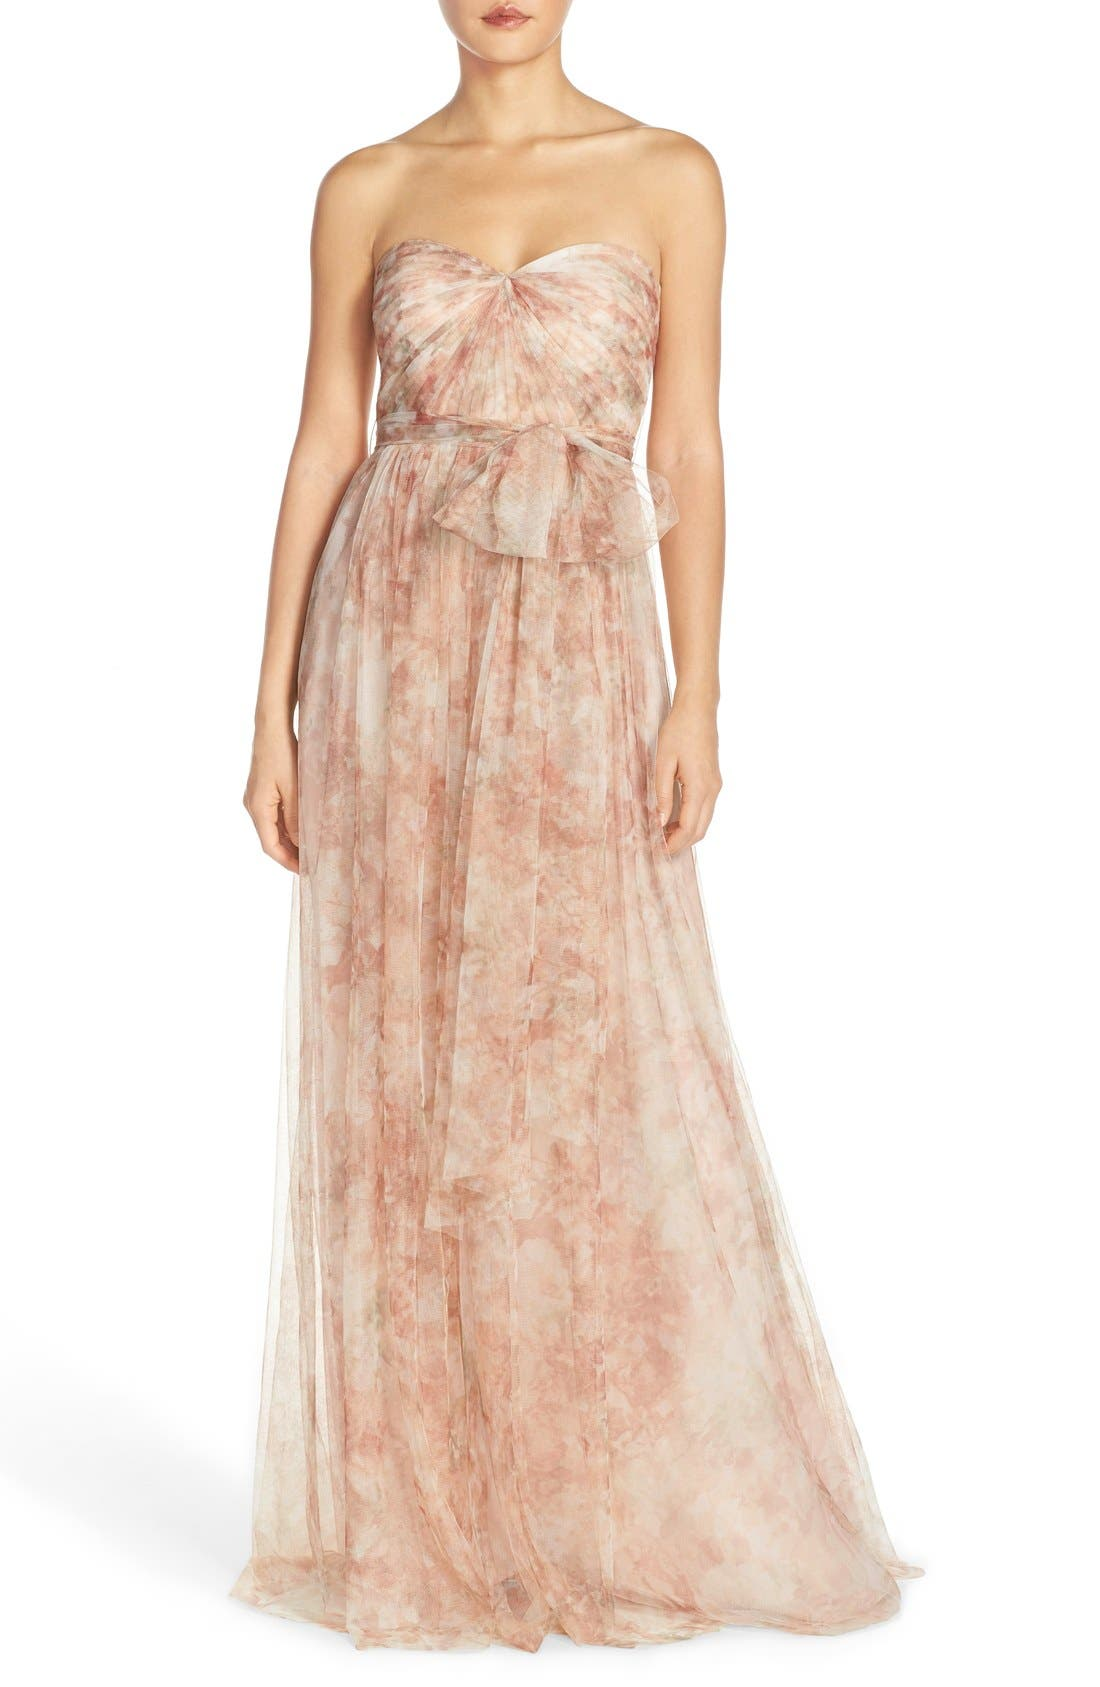 Alternate Image 1 Selected - Jenny Yoo 'Annabelle' Print Tulle Convertible Column Gown